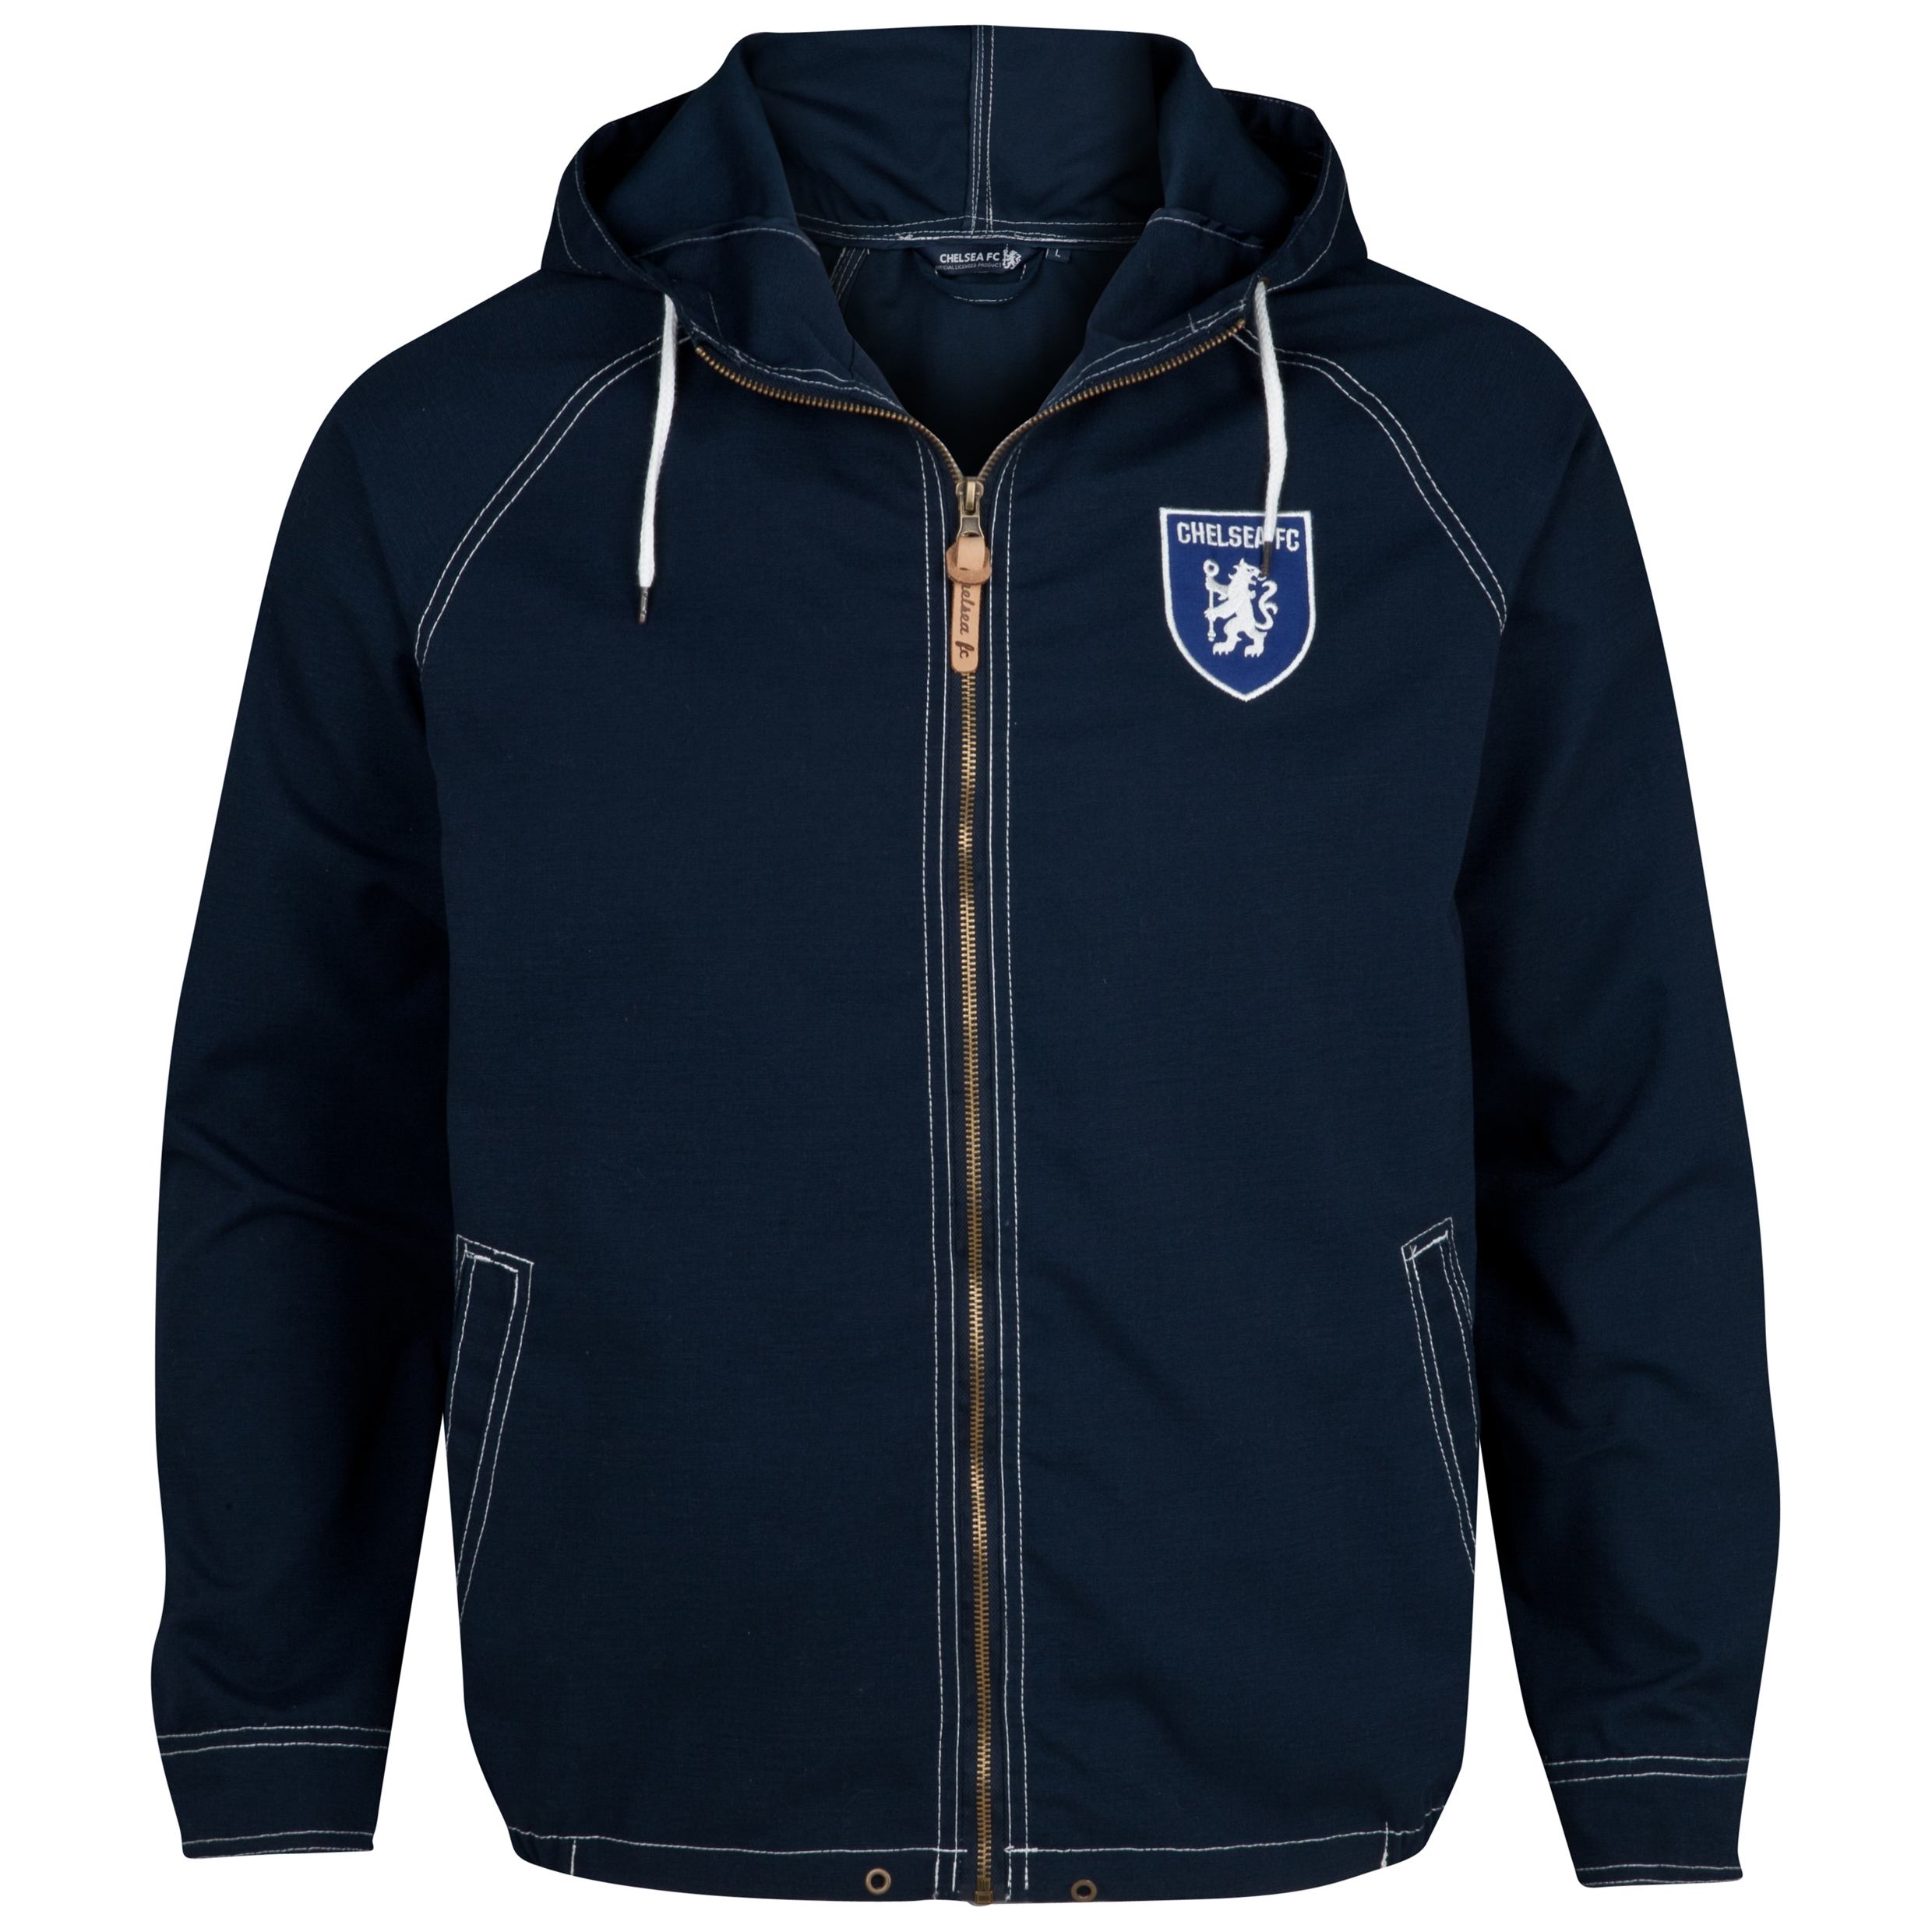 Chelsea Regatta Hooded Jacket - Navy